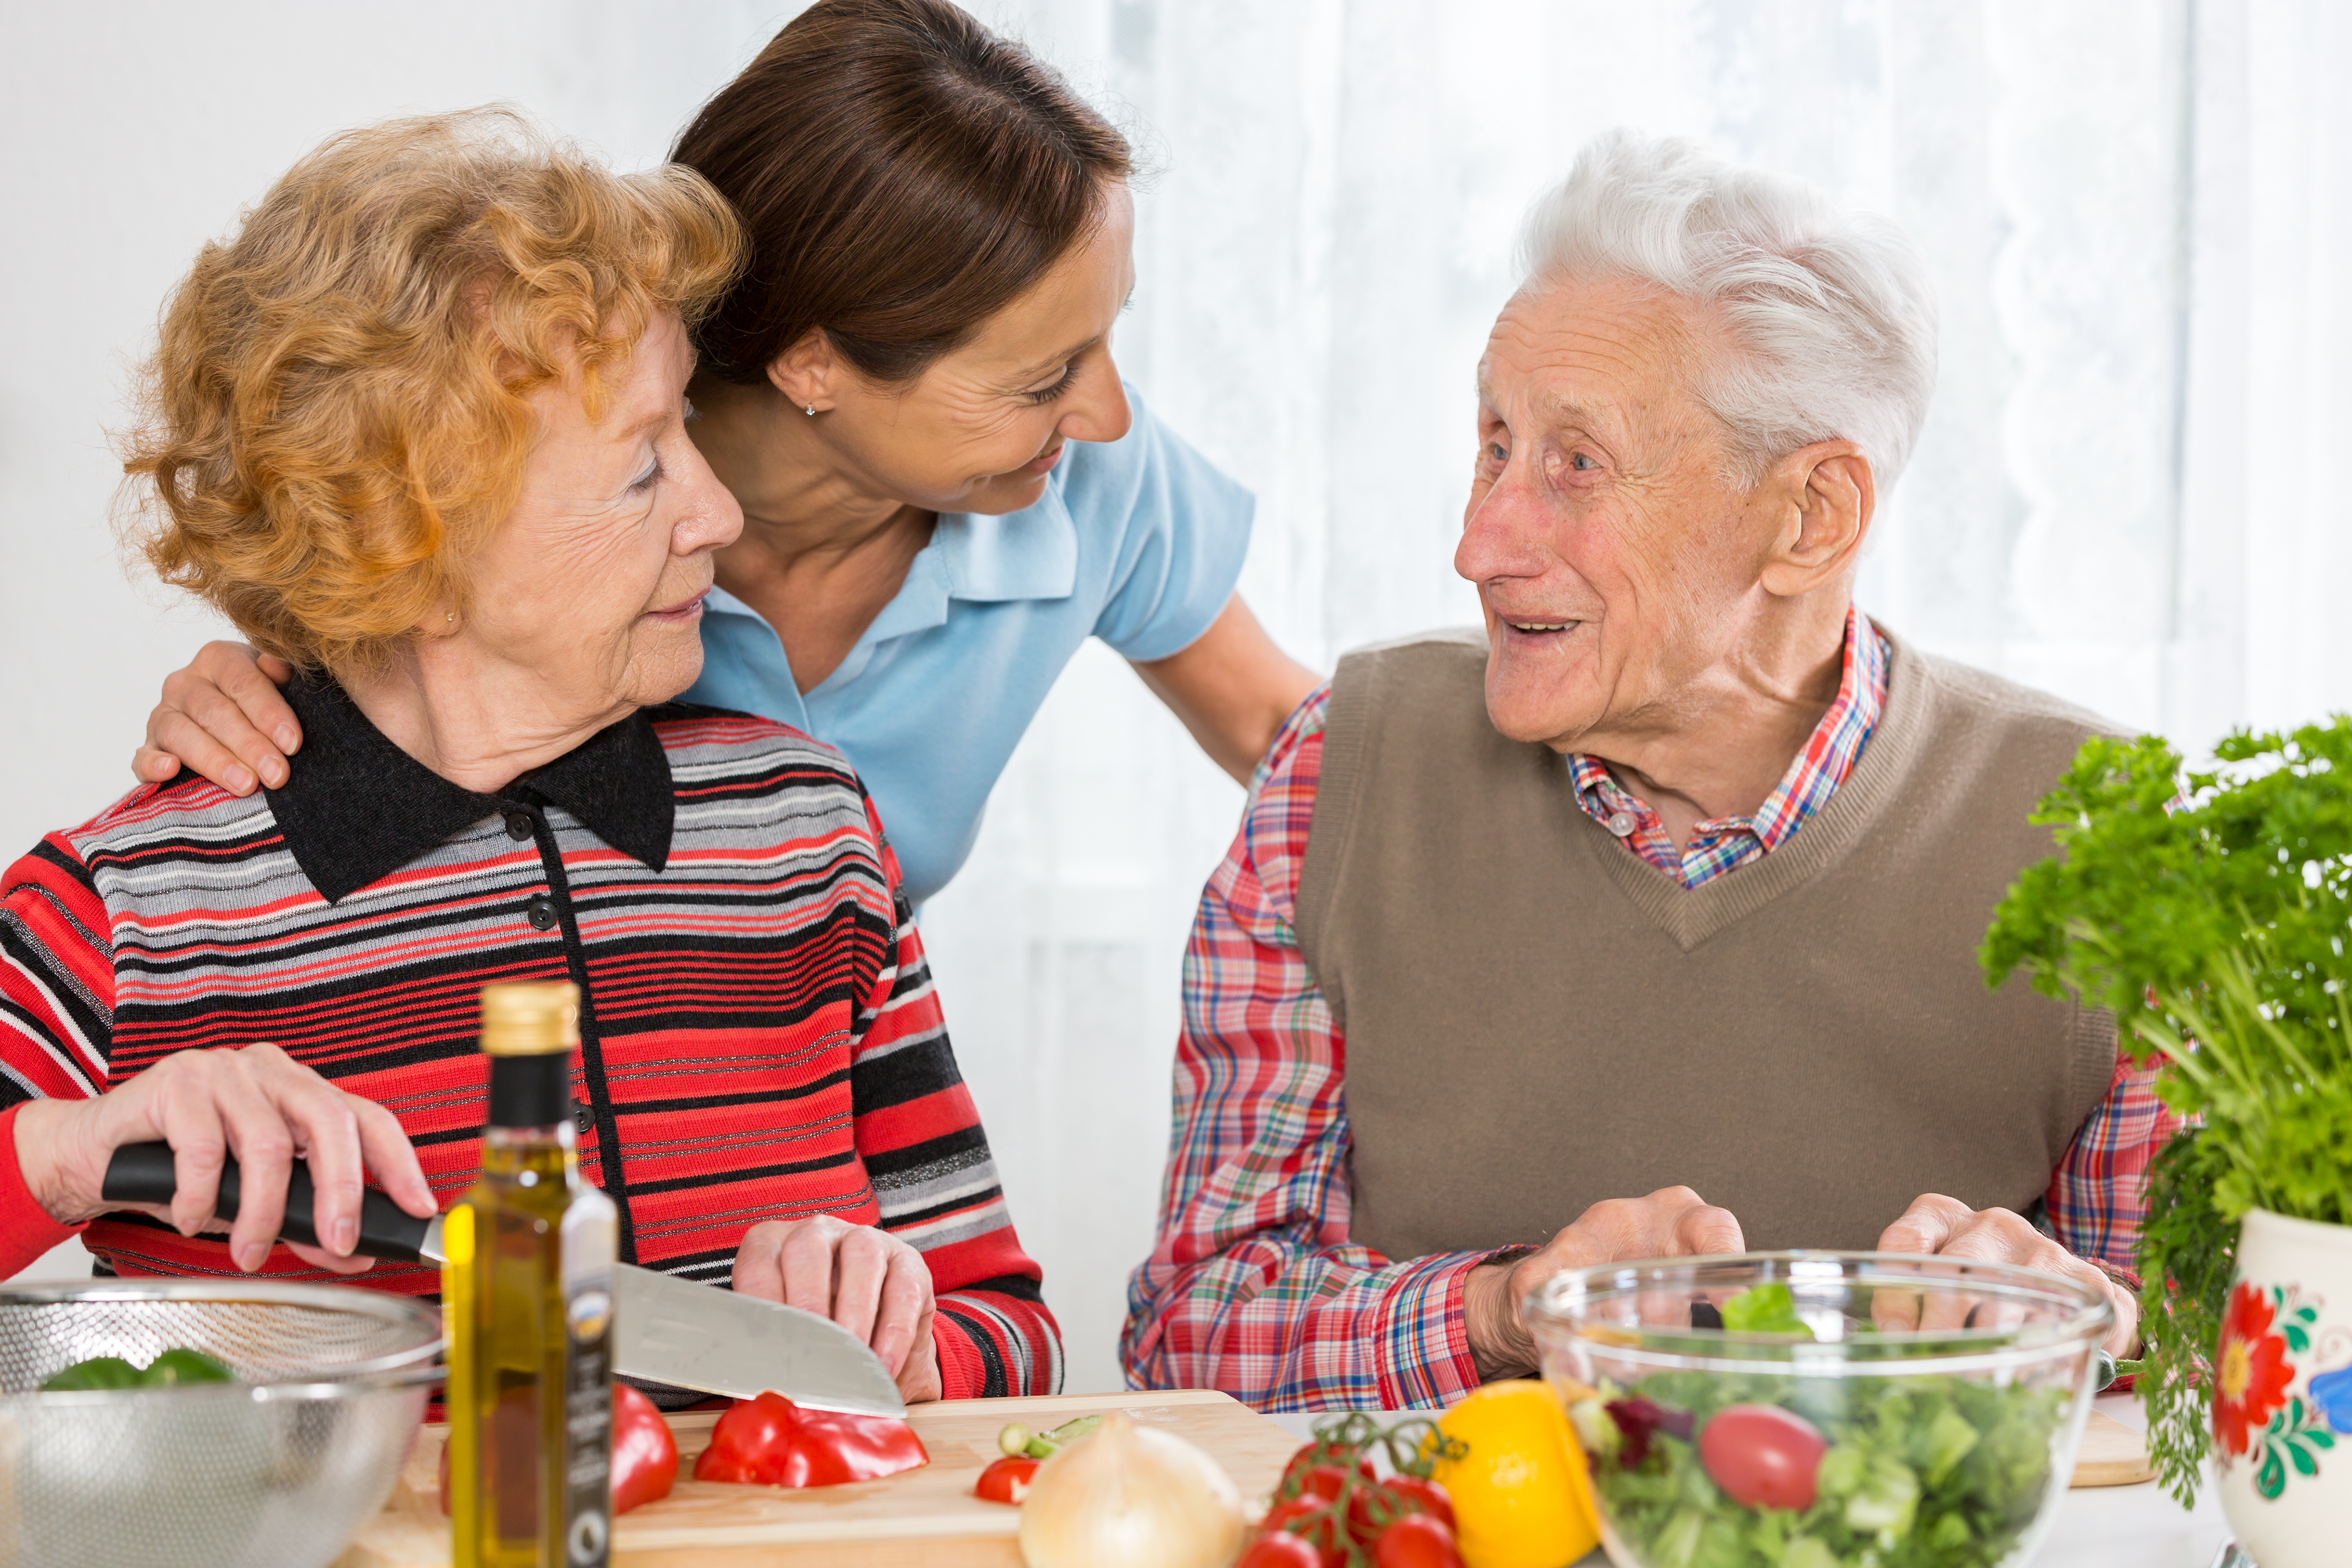 Elderly Meal Preparation as a Home Health Care Service